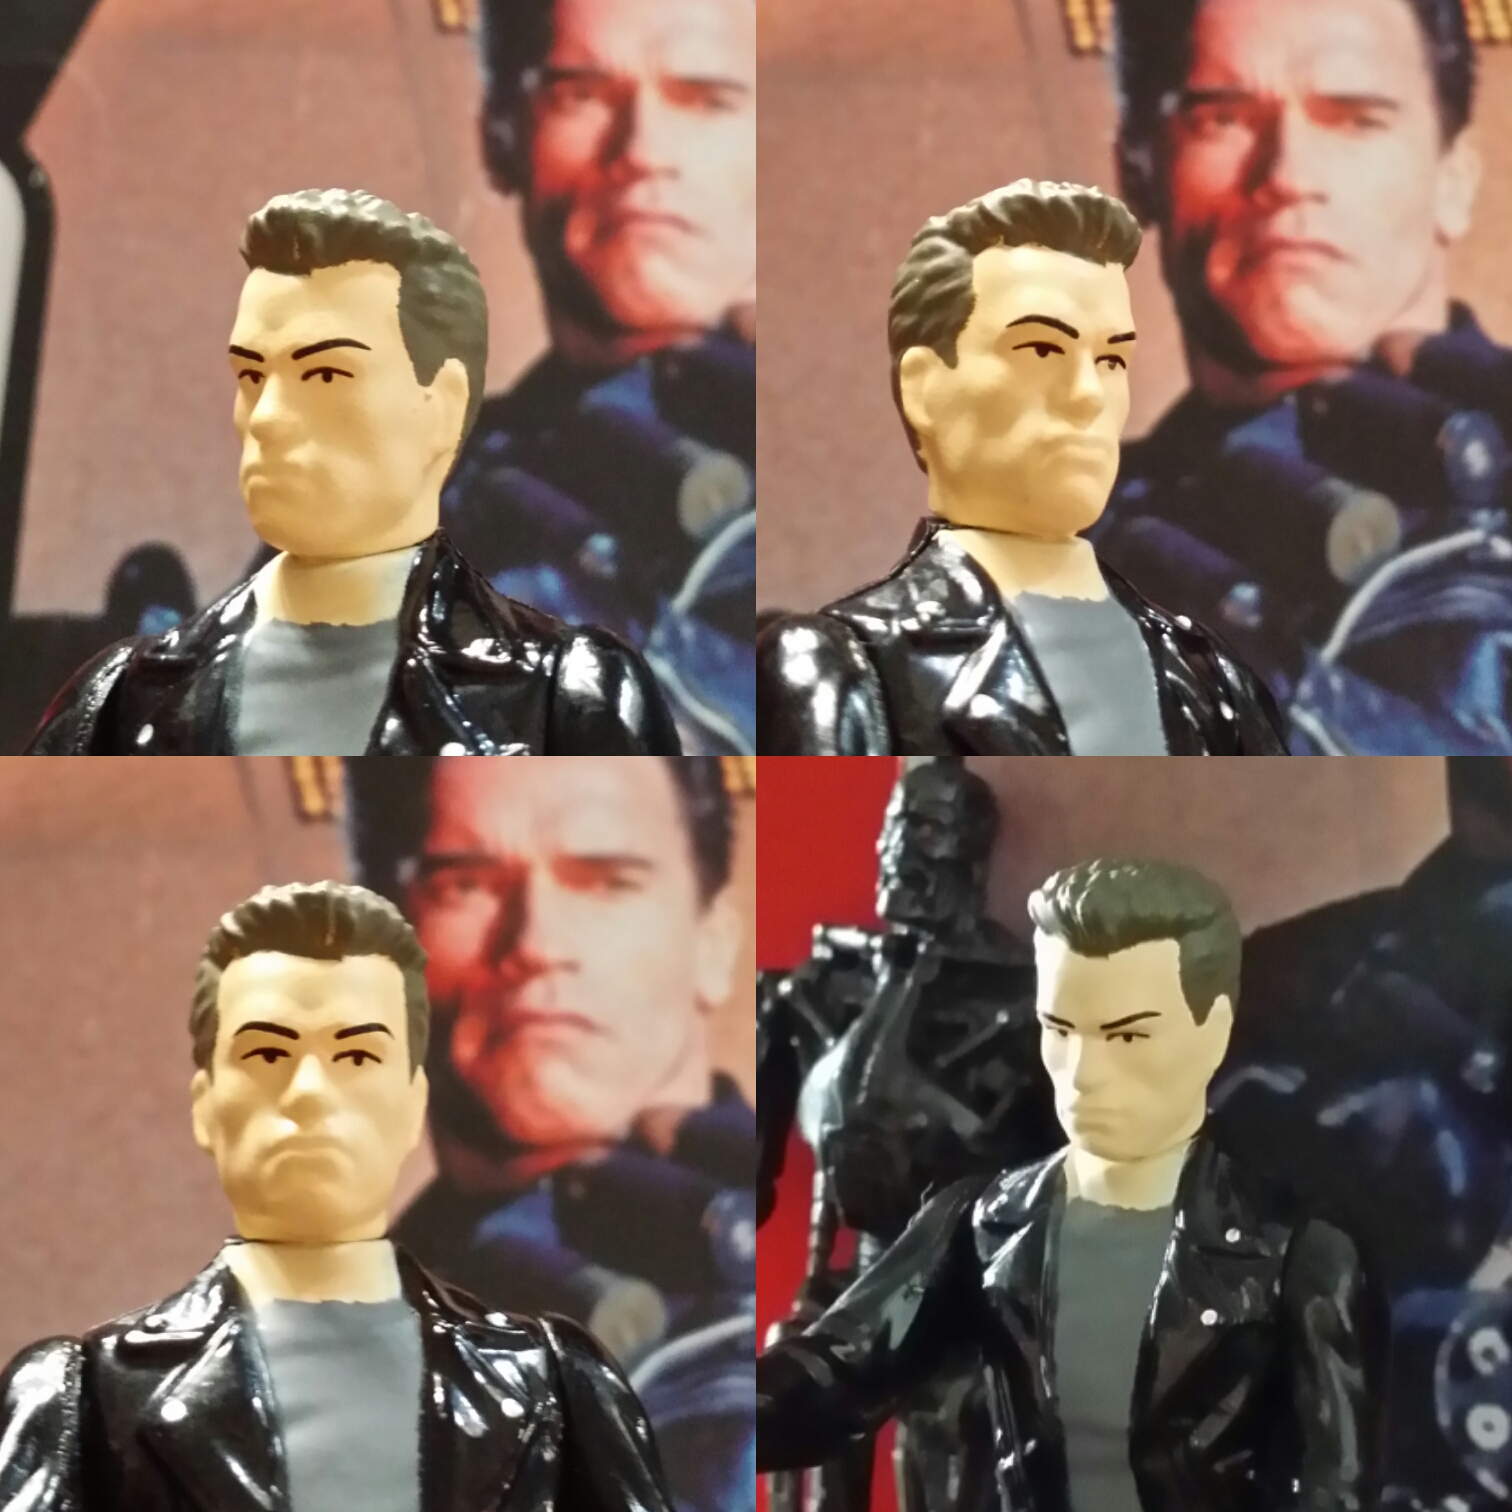 Funko ReAction - T800 (Terminator 2)